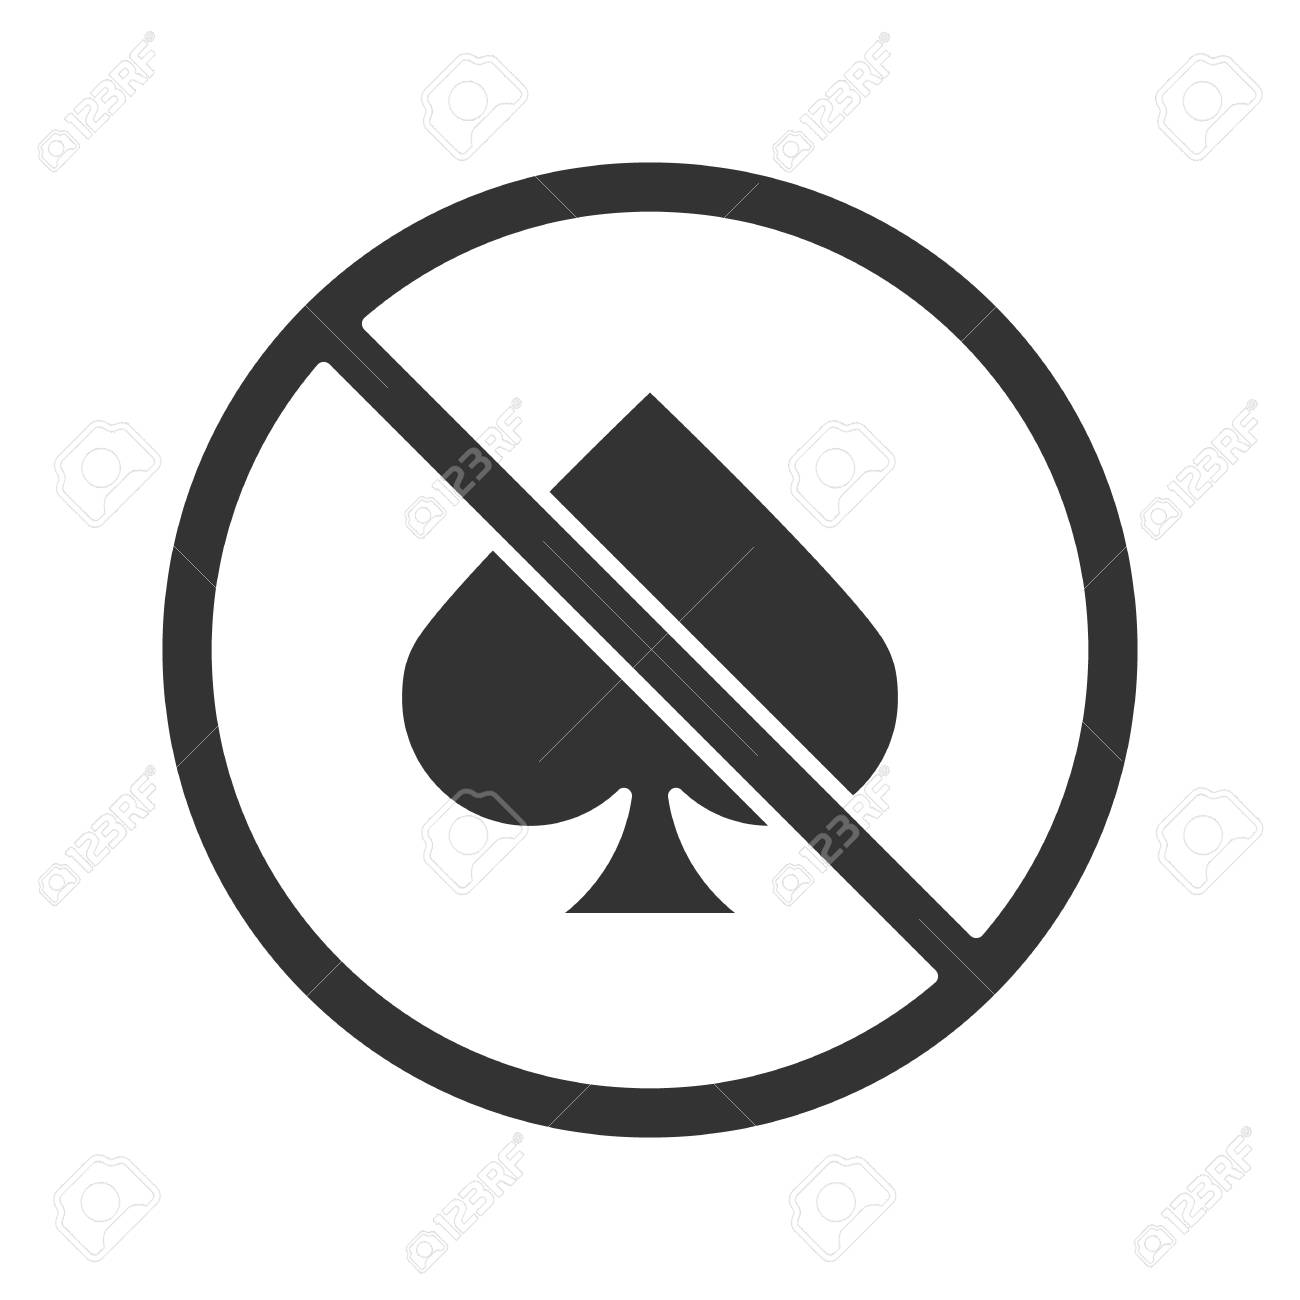 spade card no  Forbidden sign with spade card suit glyph icon. Silhouette symbol...